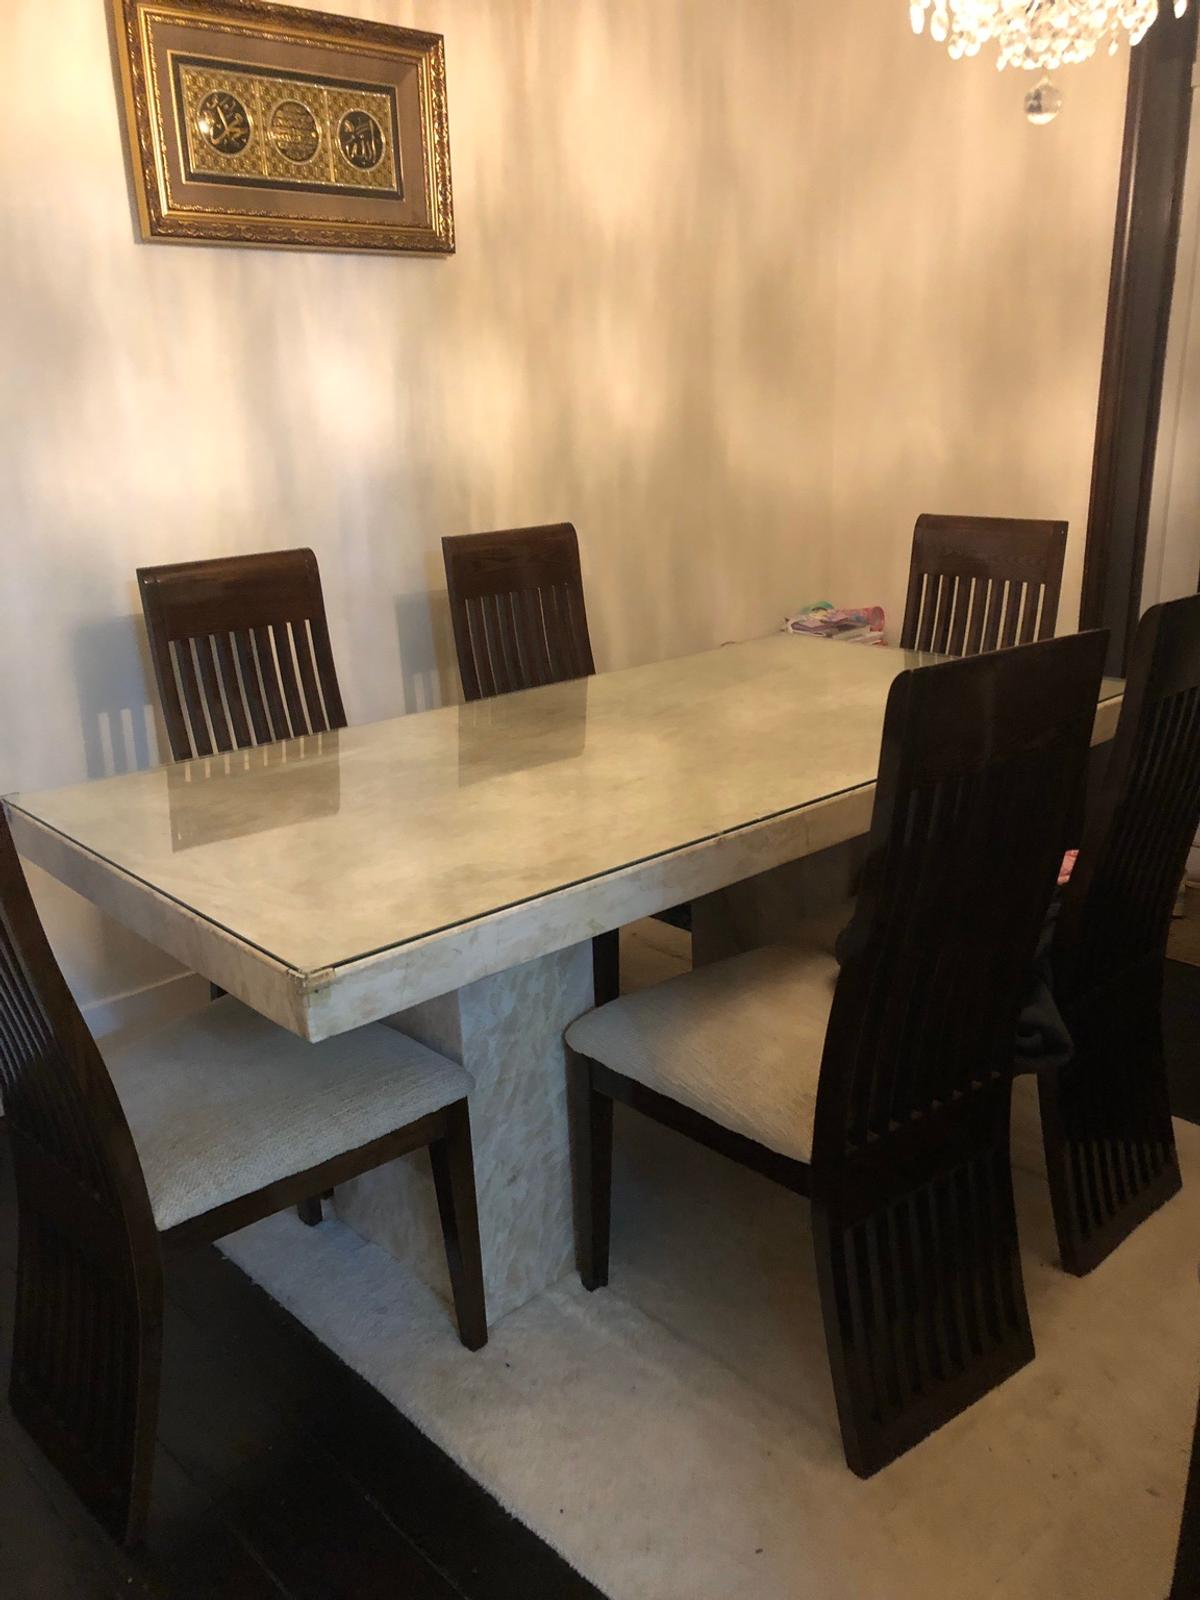 Solid Marble Dining Table 6 Chairs In Rg30 Reading For 700 00 For Sale Shpock